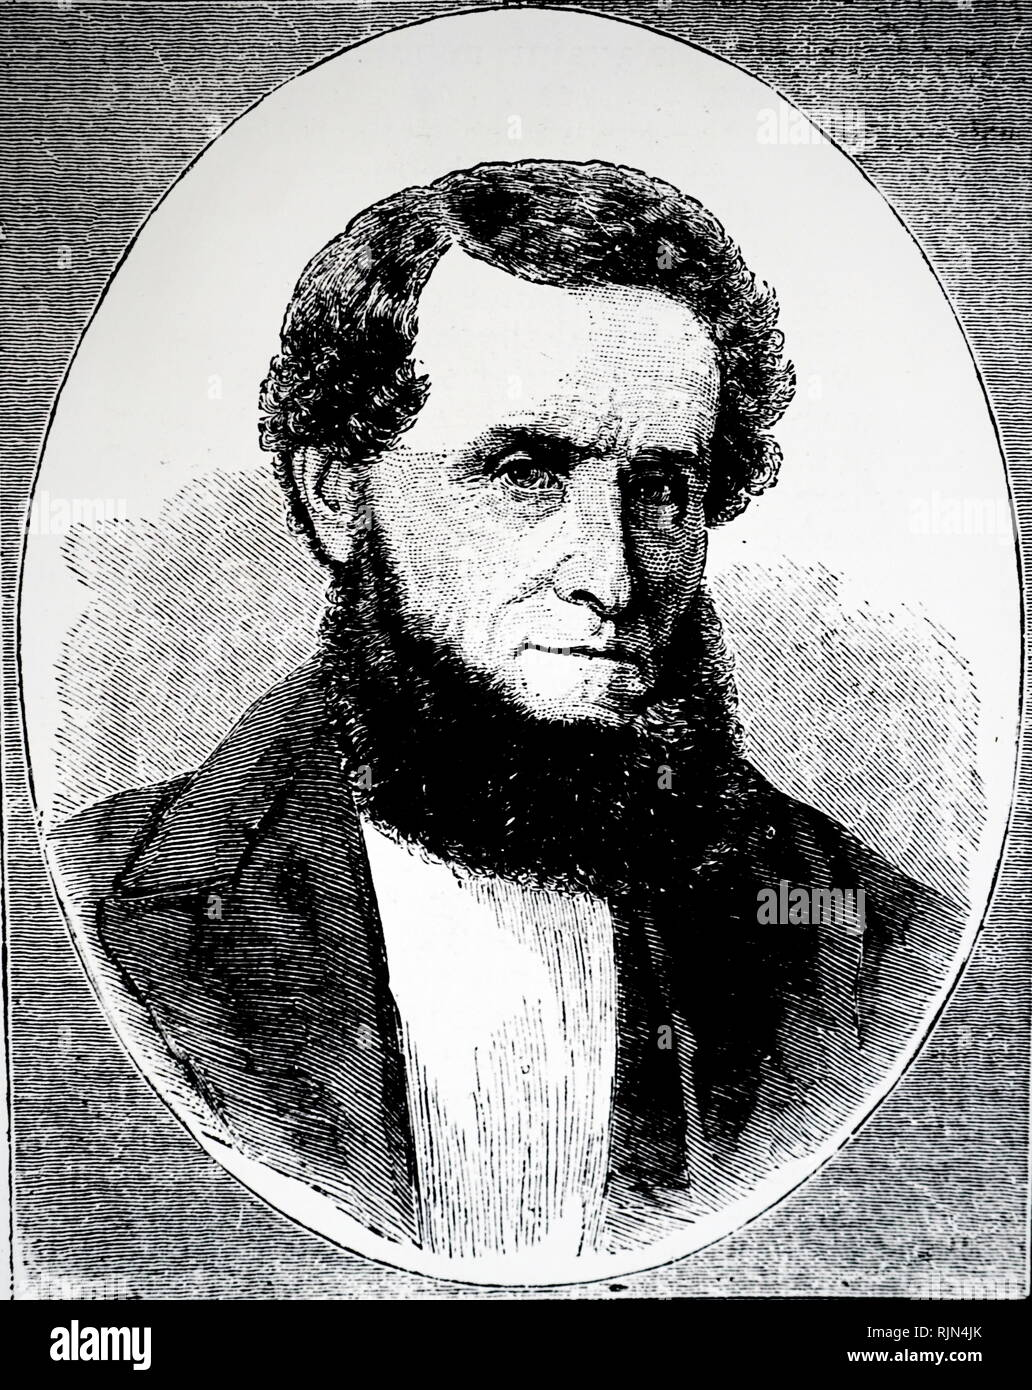 Illustration showing James Lick (August 25, 1796 - October 1, 1876); American carpenter, piano builder, land baron, and patron of the sciences. At the time of his death, he was the wealthiest man in California, and left the majority of his estate to social and scientific causes. - Stock Image